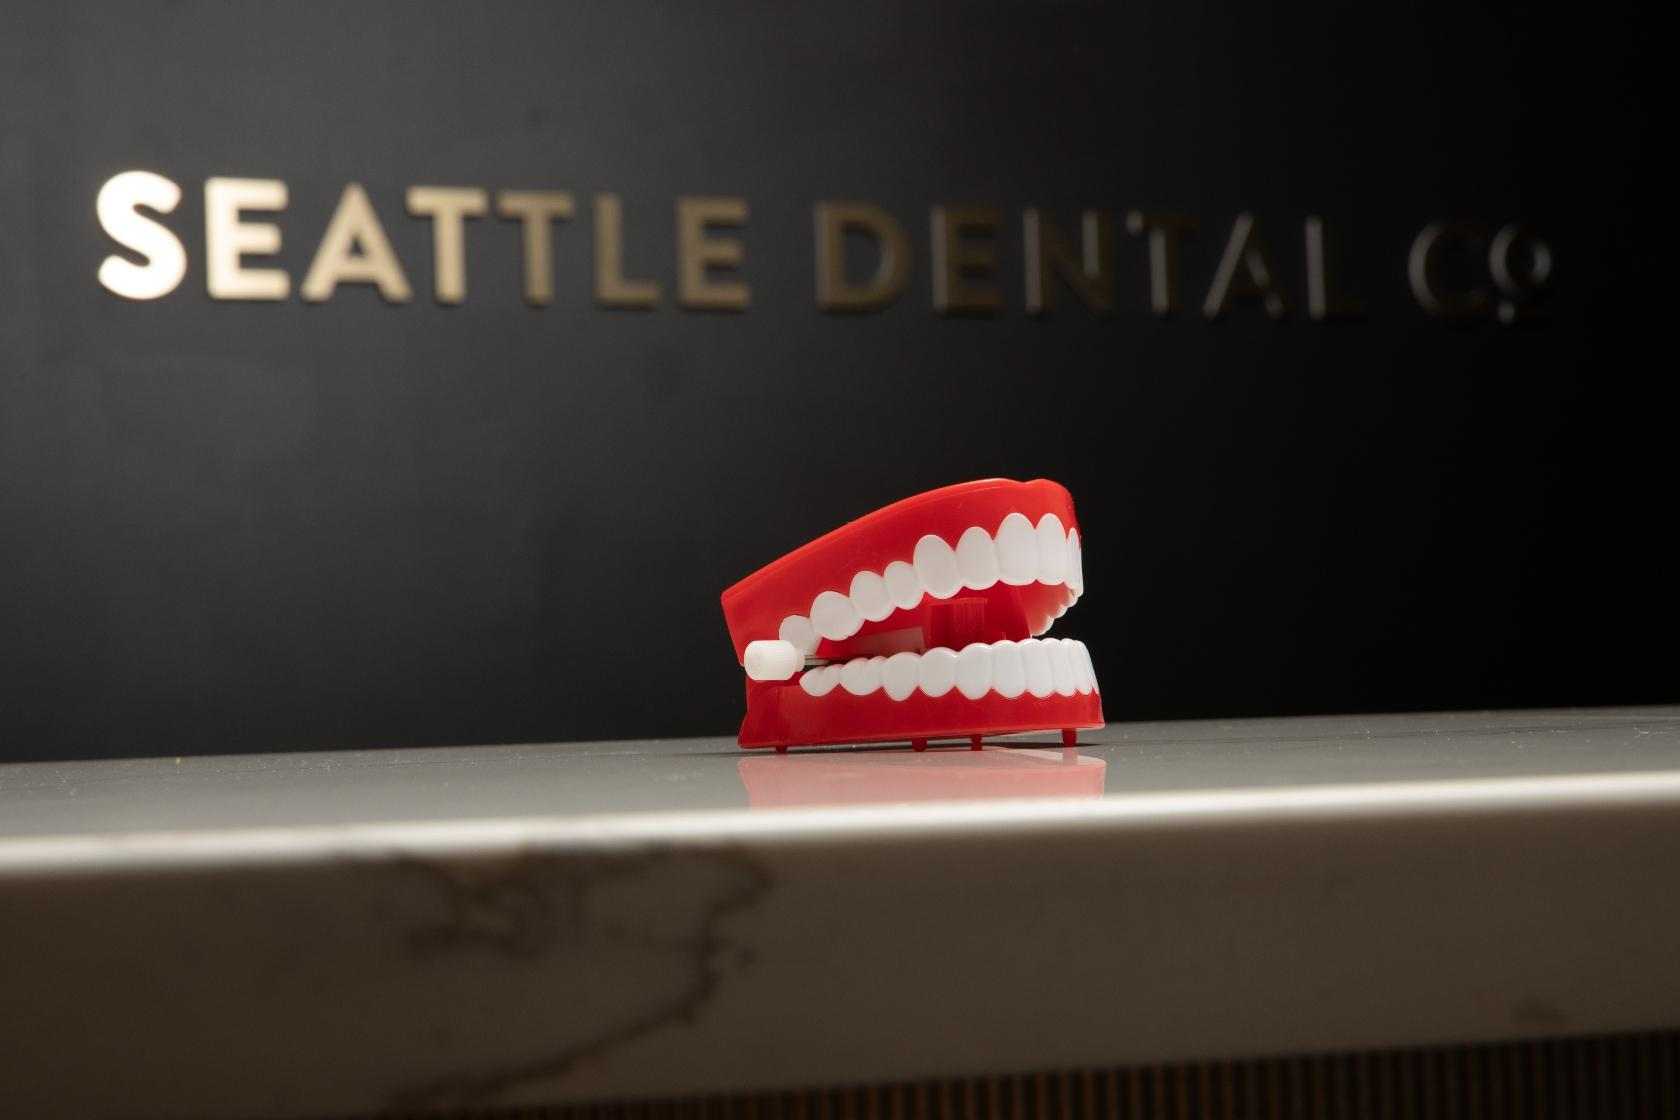 Teeth model in front of Seattle Dental Co.